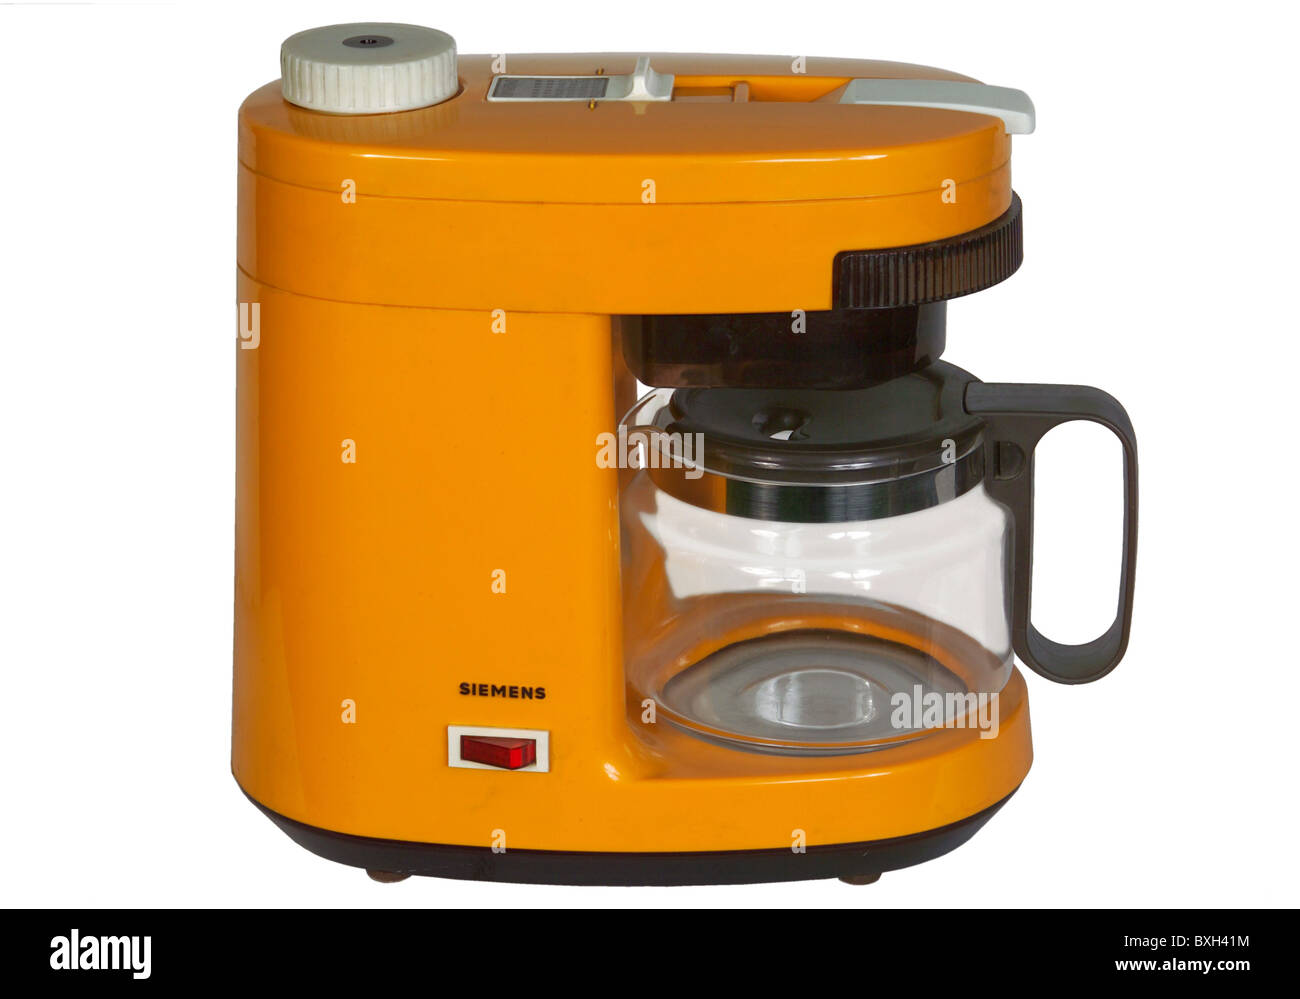 household, kitchen and kitchenware, siemens coffee maker, germany